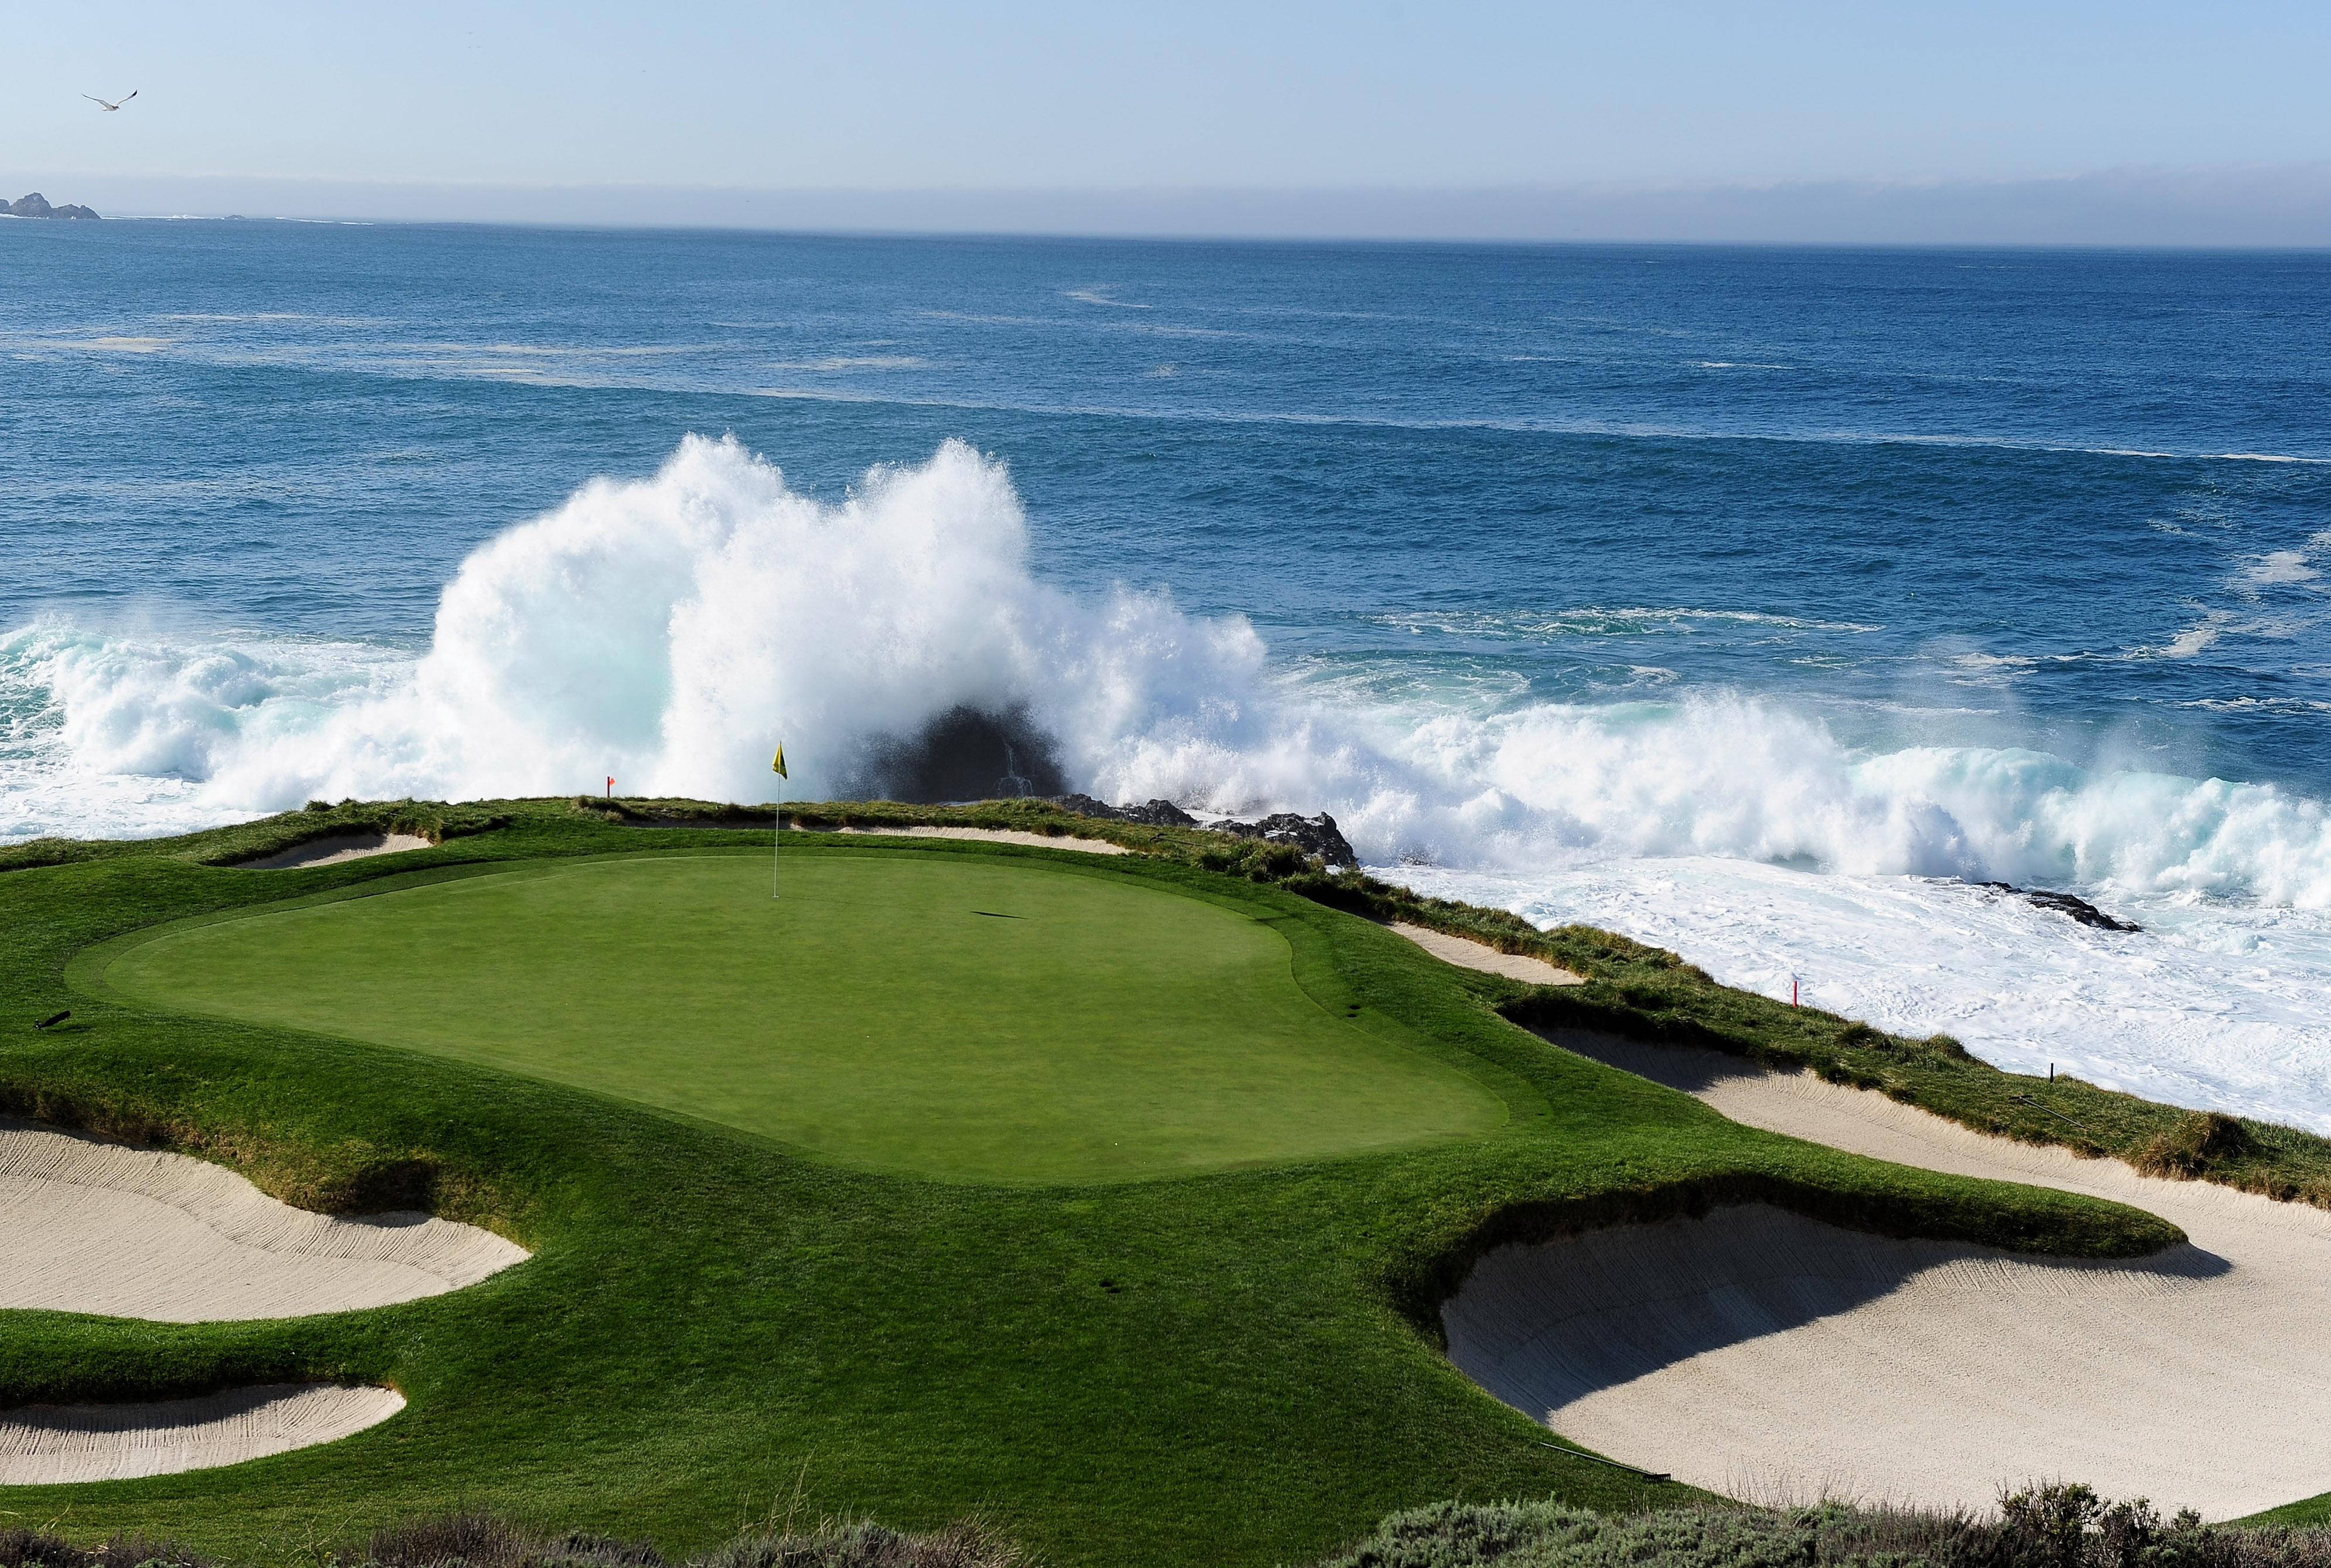 A view of the 7th hole at Pebble Beach Golf Links.